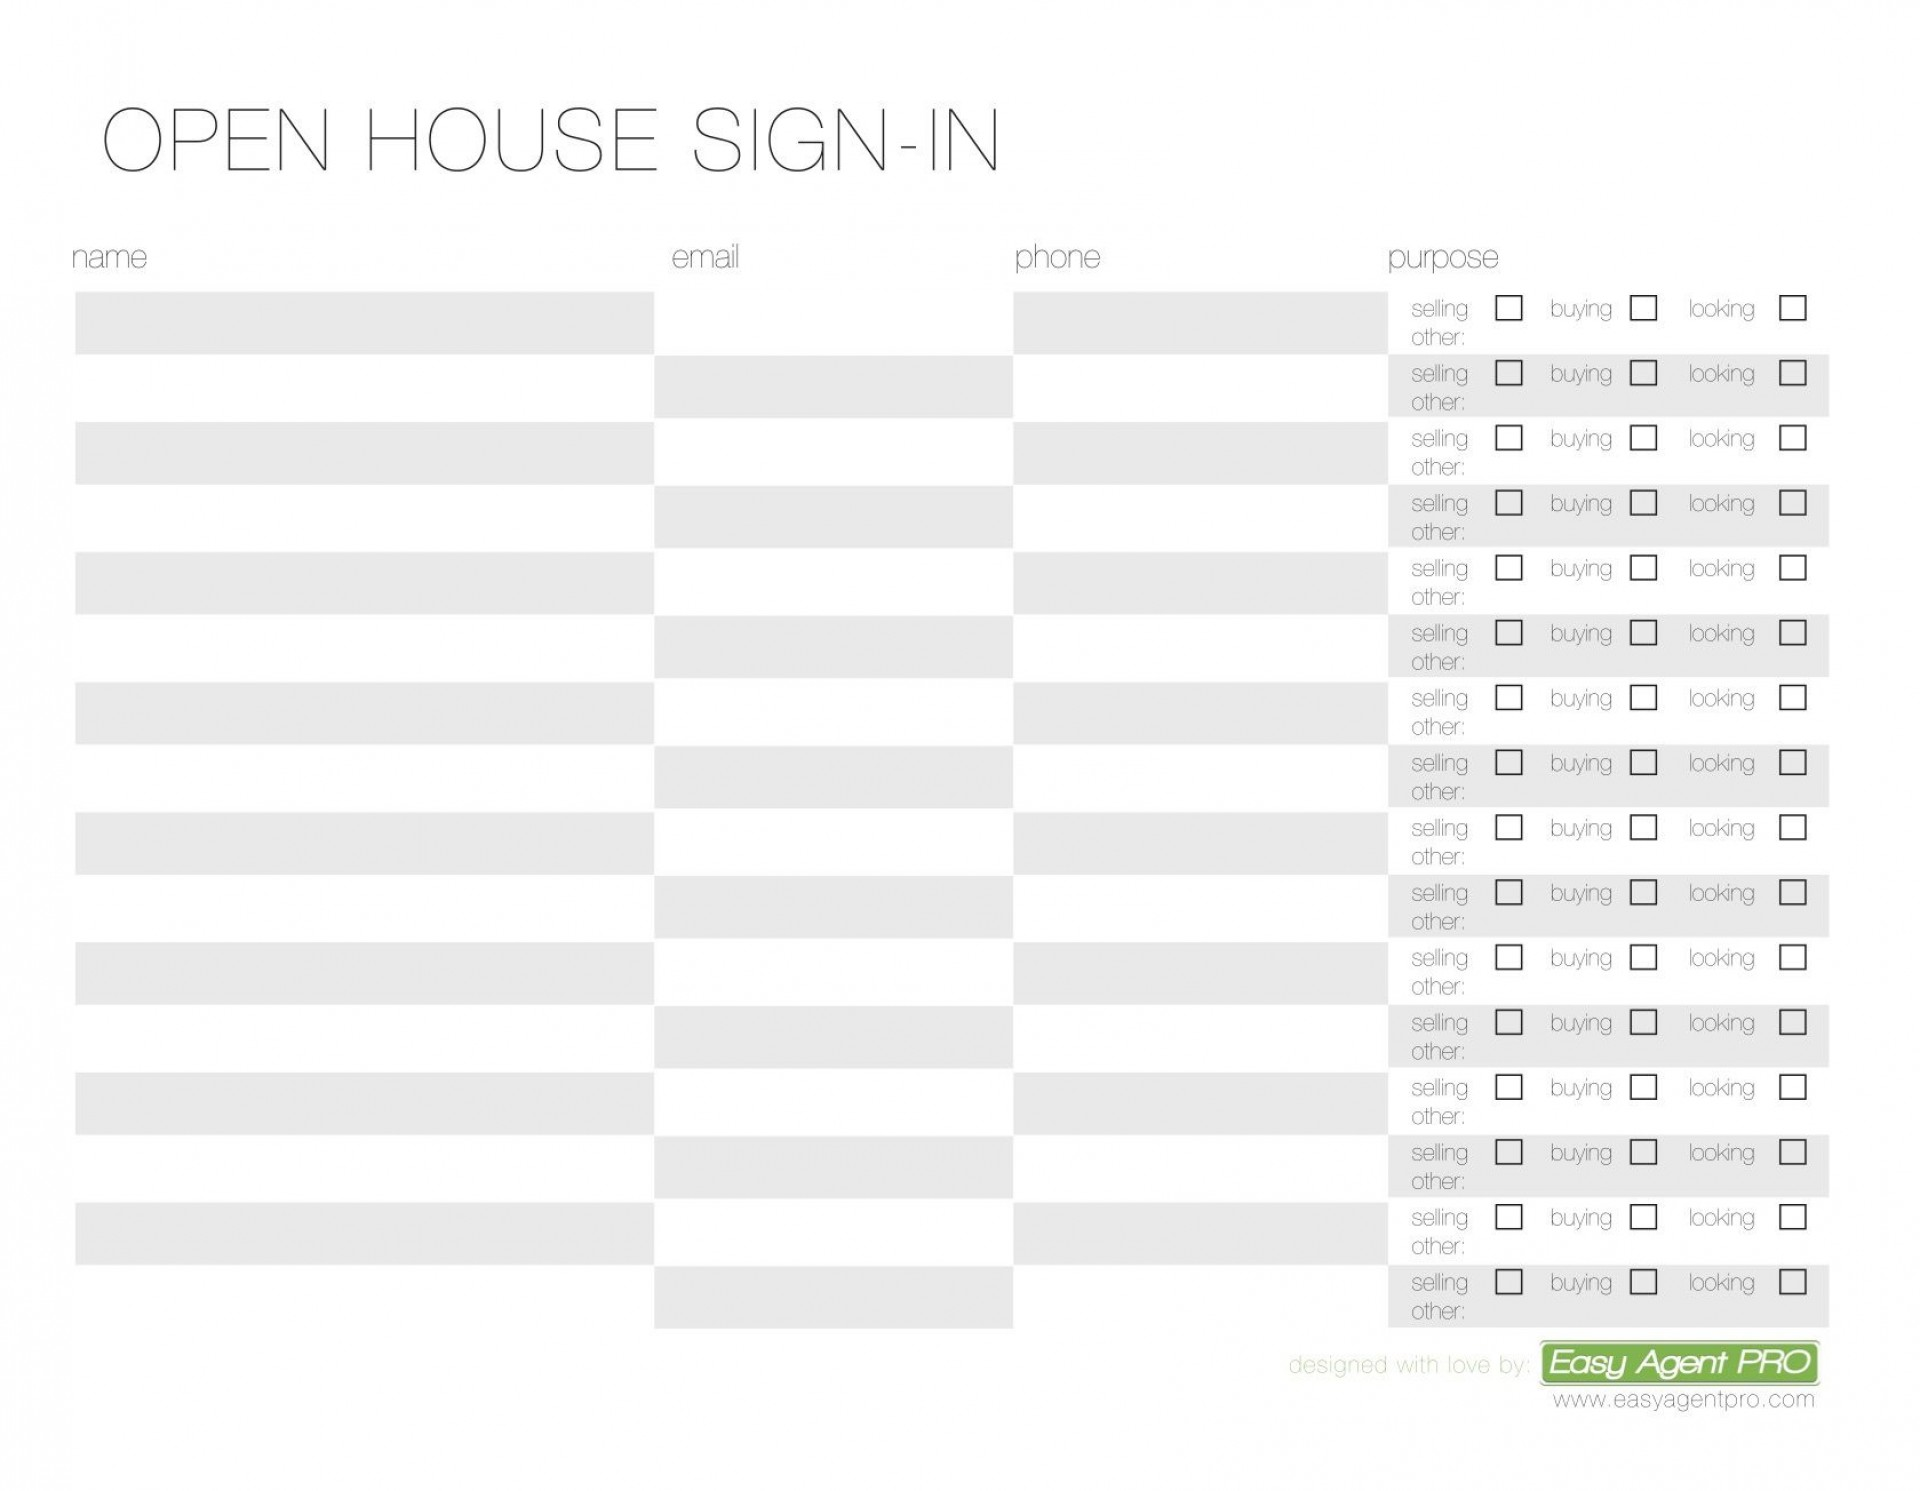 005 Impressive Visitor Sign In Sheet Template Free Photo  Printable1920